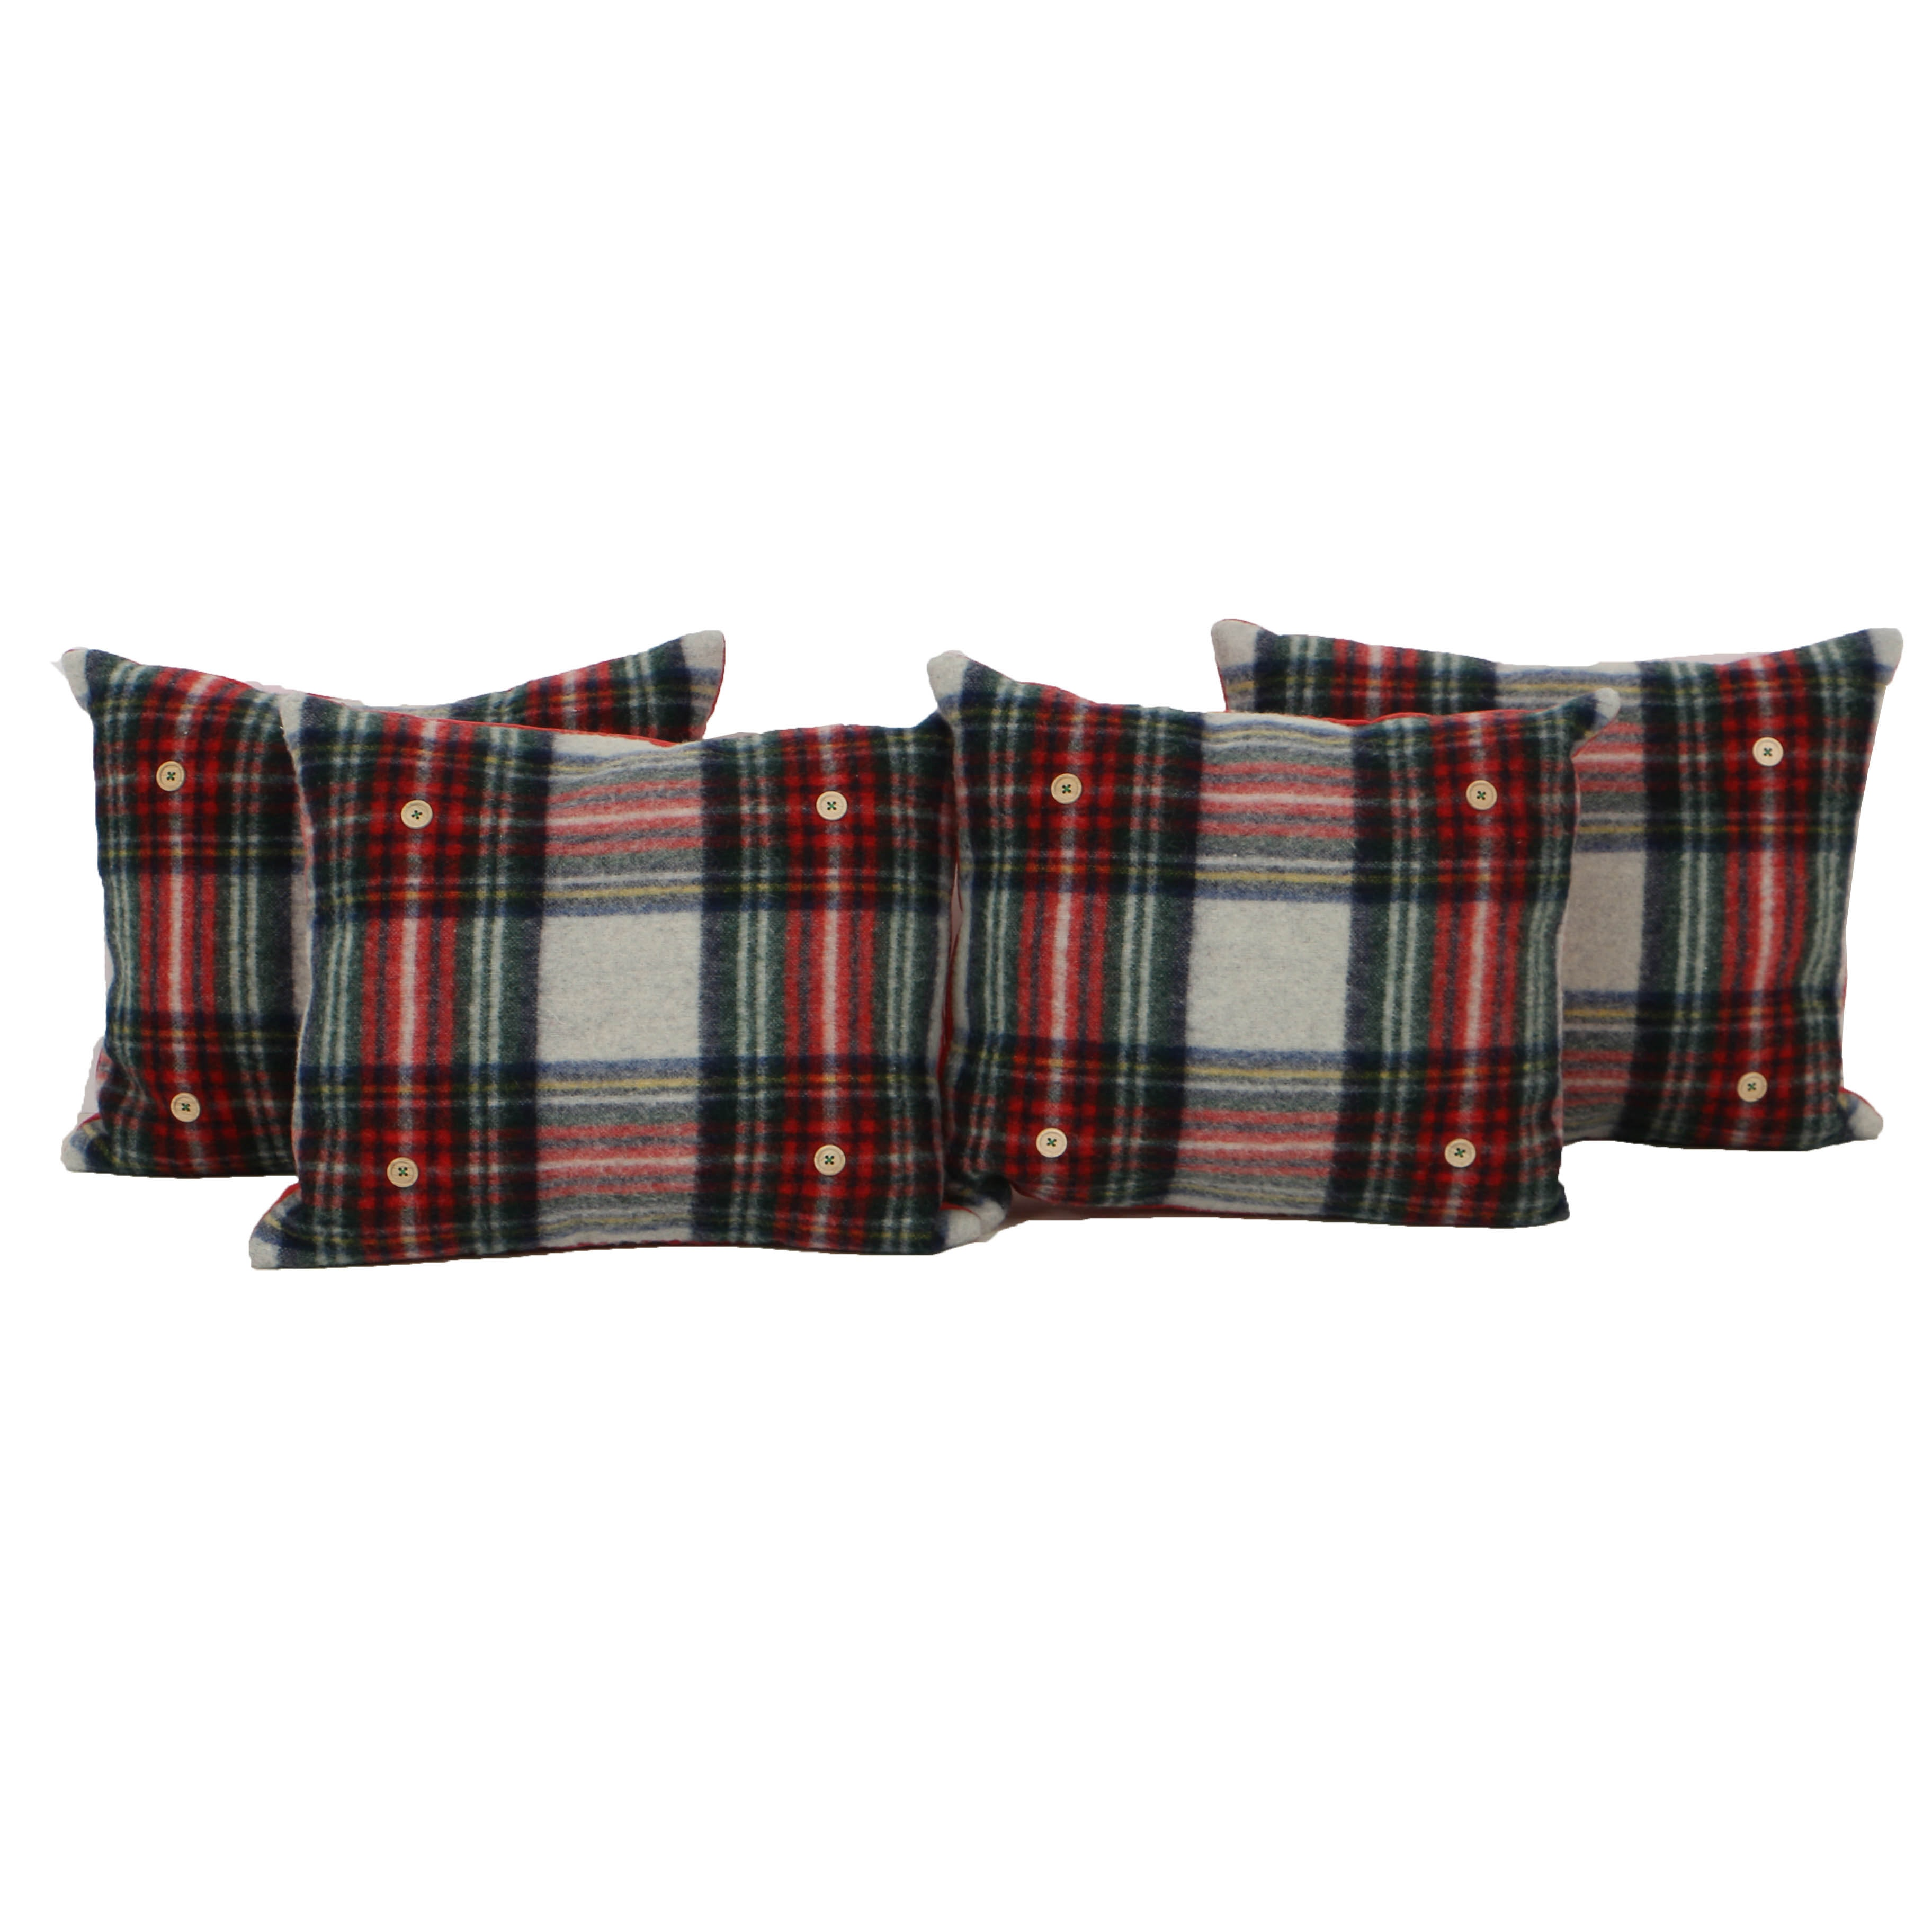 Pendelton Tartan Pillows With Button Accents